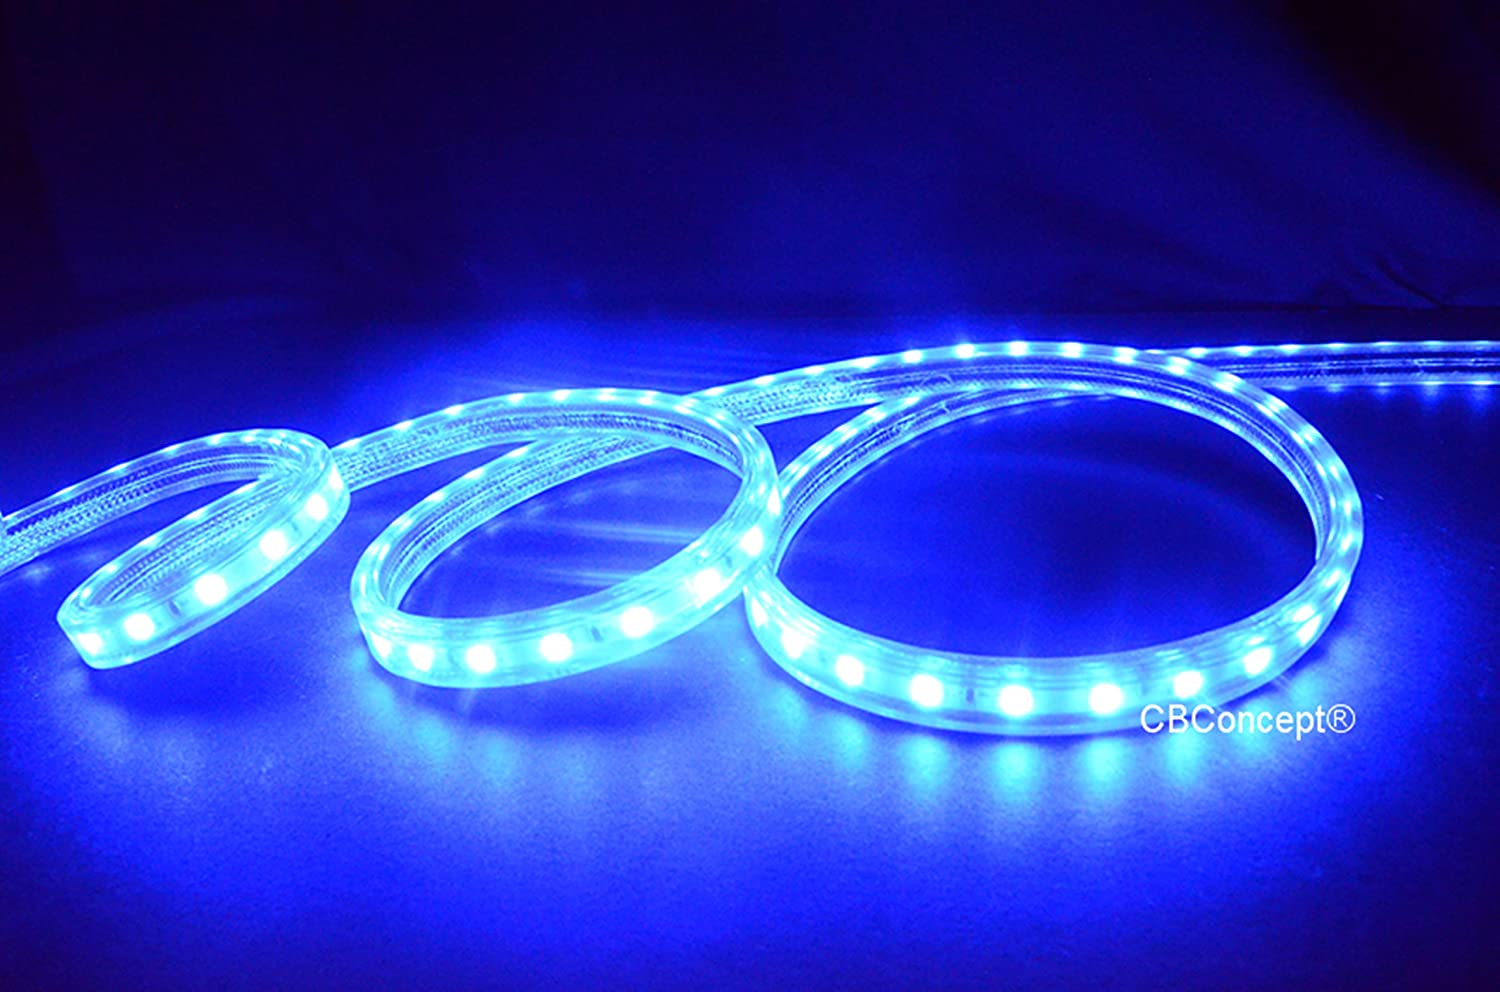 Cbconcept ul listed 80 feet super bright 22000 lumen blue cbconcept ul listed 80 feet super bright 22000 lumen blue dimmable 110 120v ac flexible flat led strip rope light 1470 units 5050 smd leds aloadofball Images